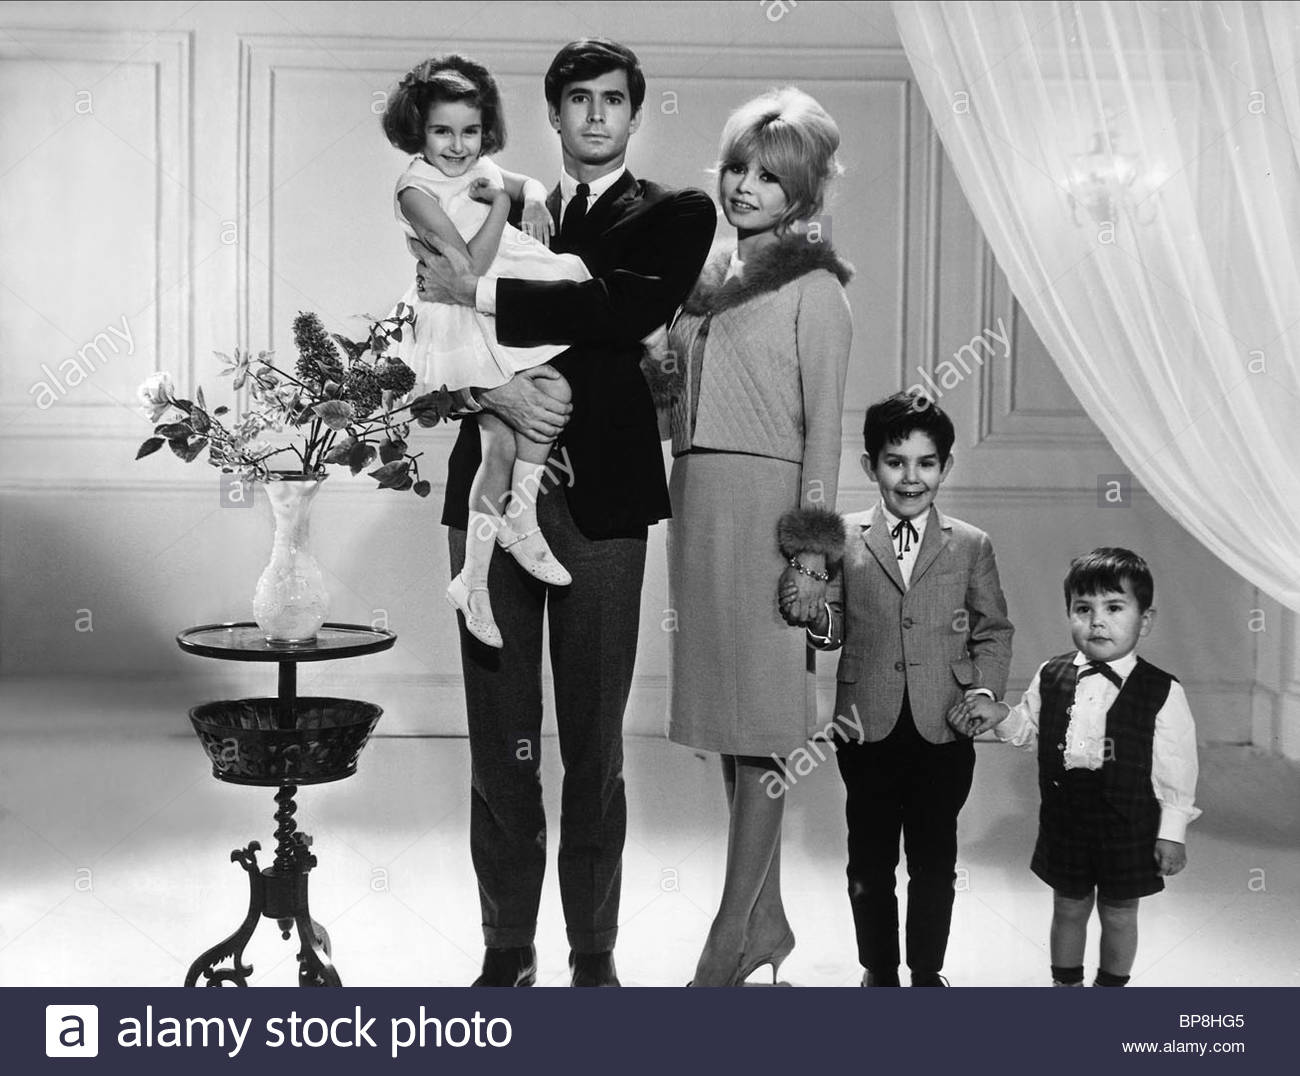 ANTHONY PERKINS   BRIGITTE BARDOT THE RAVISHING IDIOT  ADORABLE     ANTHONY PERKINS   BRIGITTE BARDOT THE RAVISHING IDIOT  ADORABLE IDIOT   AGENT 38 24 36  BEWITCHING SCATTERBRAIN  THE WARM BLOODED